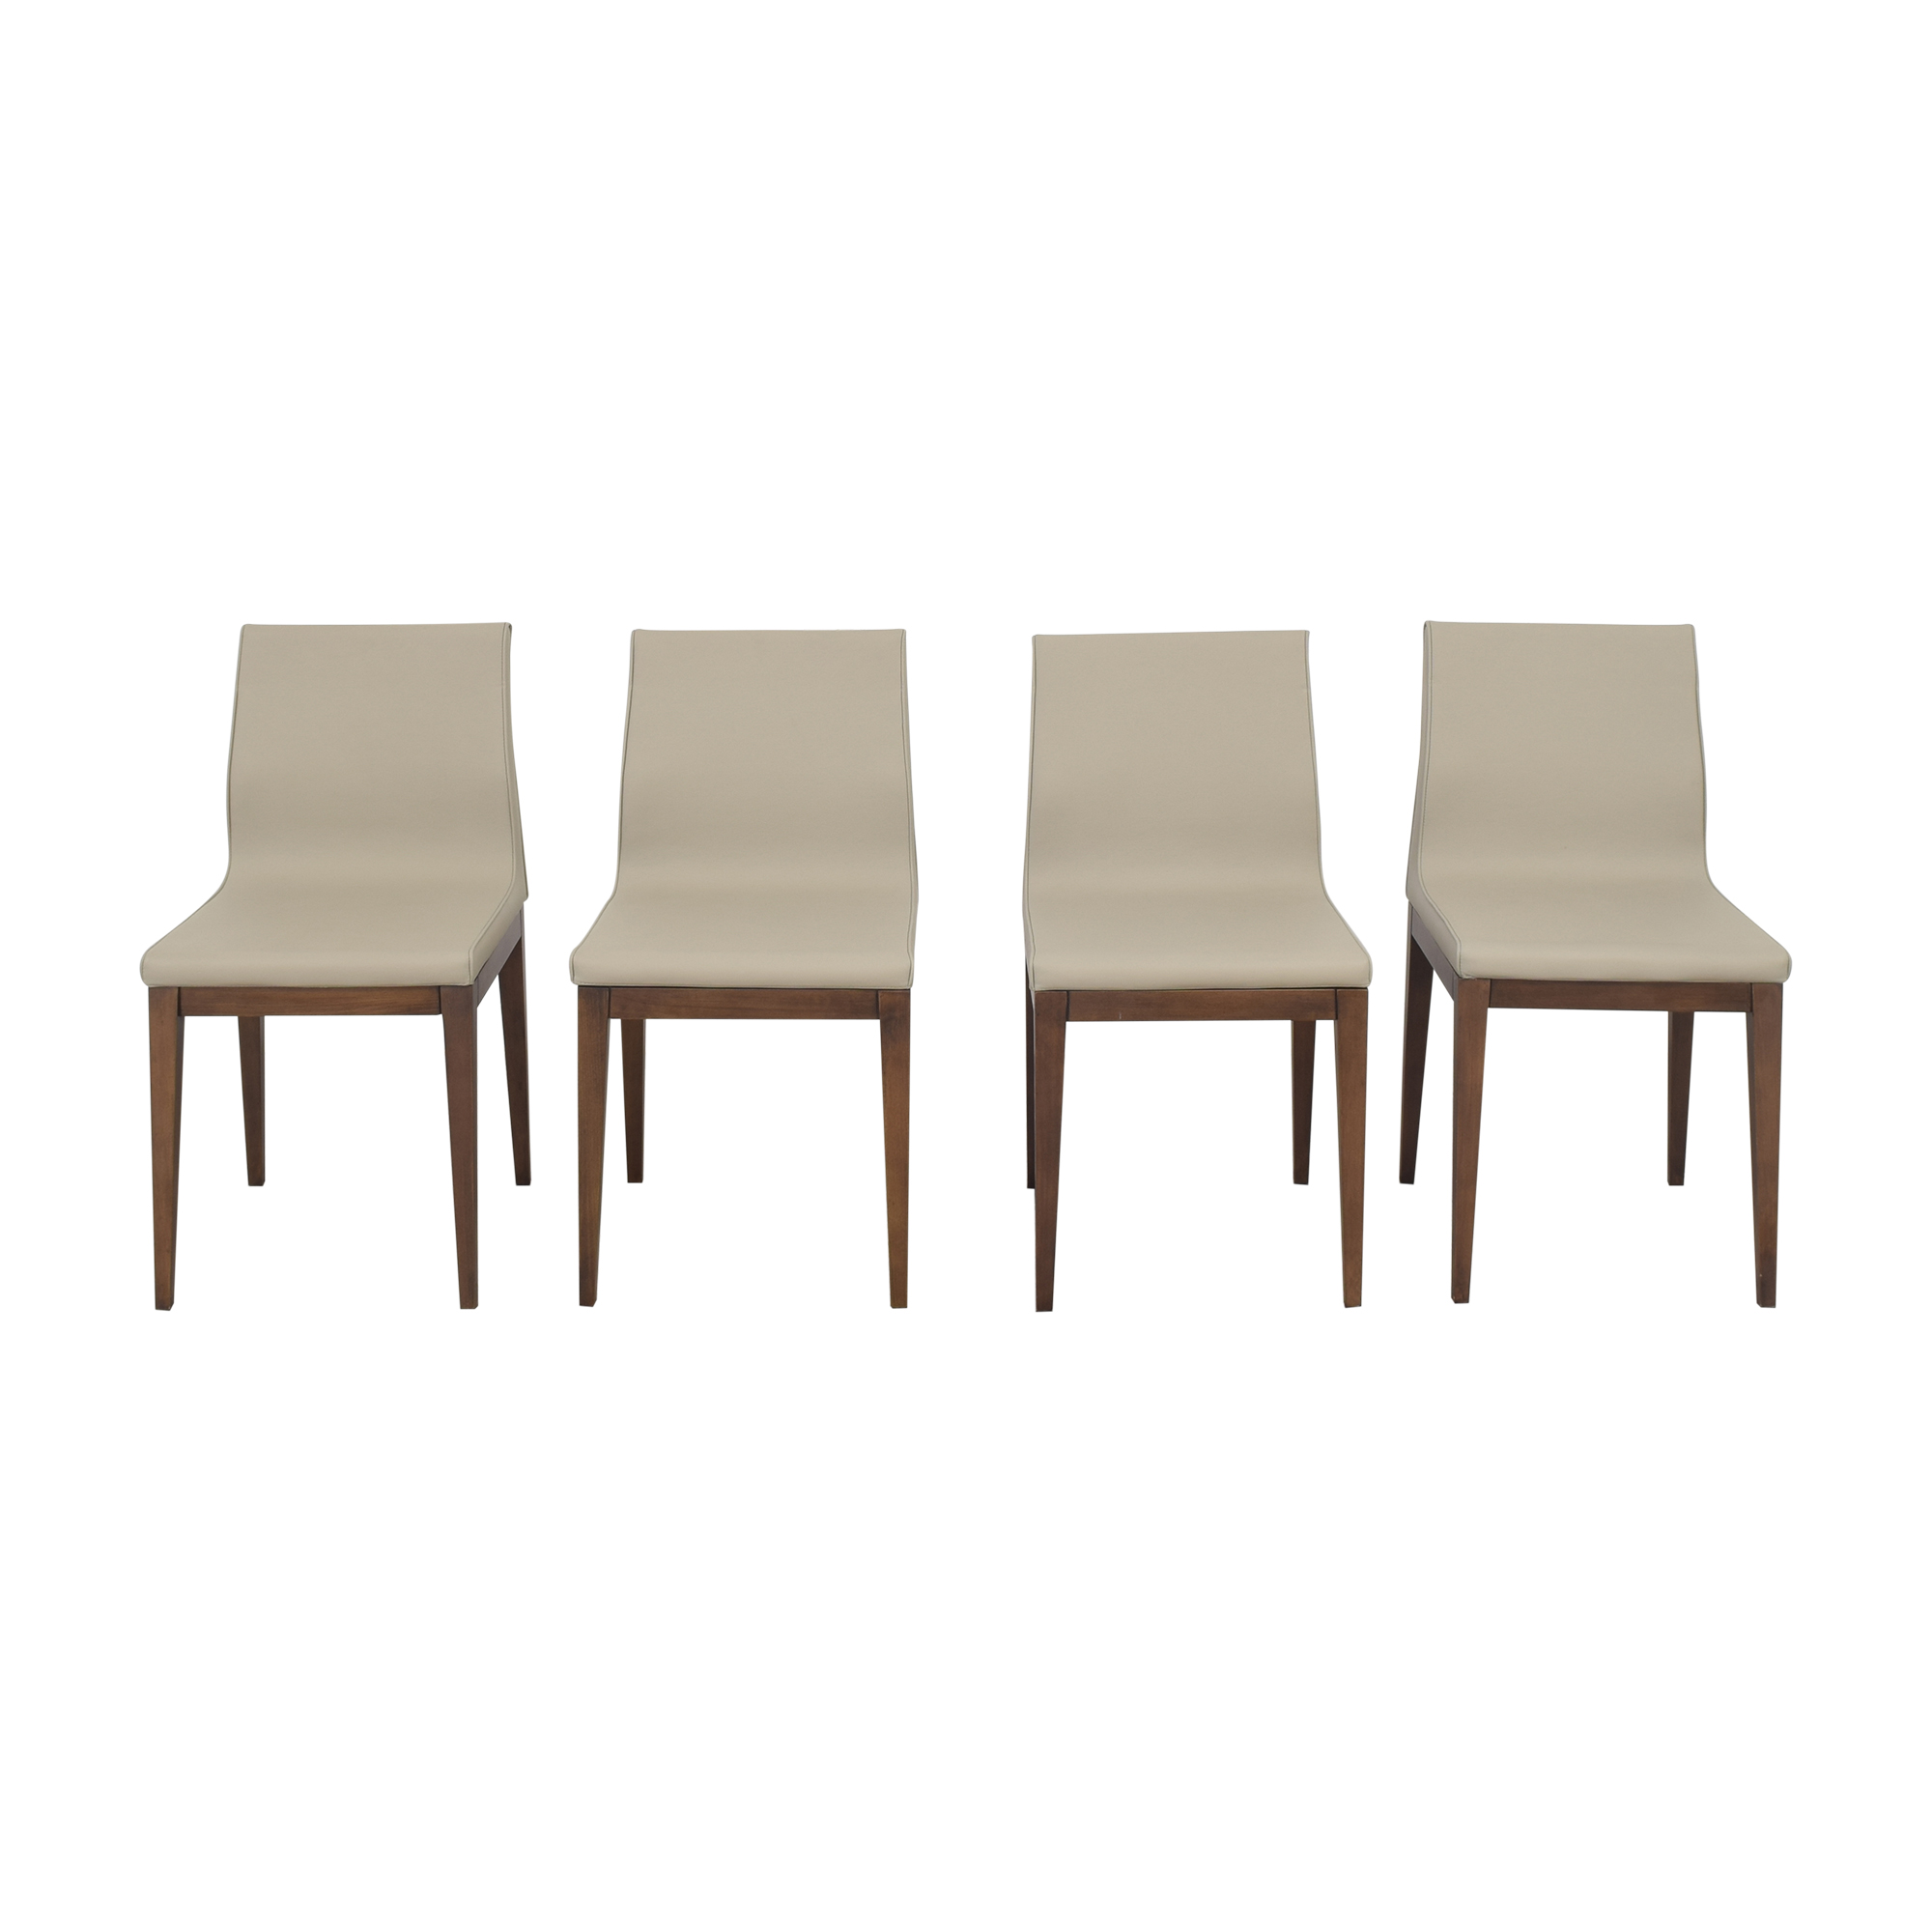 sohoConcept sohoConcept Aria Dining Chairs Dining Chairs